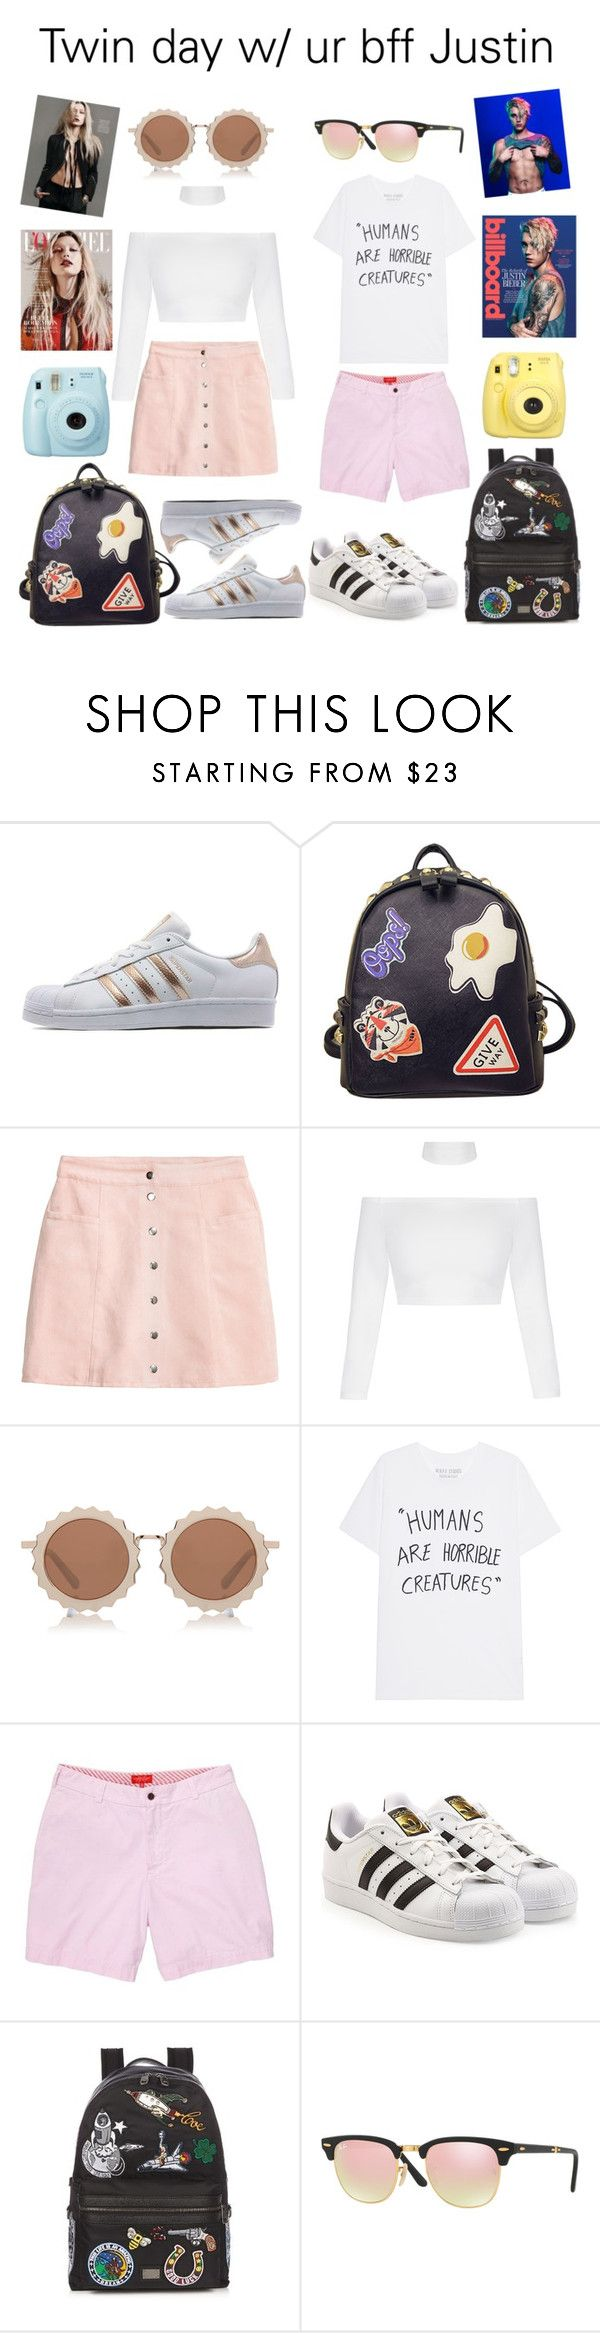 """twin day w/ your best friend Justin"" by poczustin ❤ liked on Polyvore featuring adidas Originals, WithChic, Fuji, House of Holland, Southern Proper, Dolce&Gabbana, Ray-Ban, Fujifilm, Justin Bieber and Baldwin"